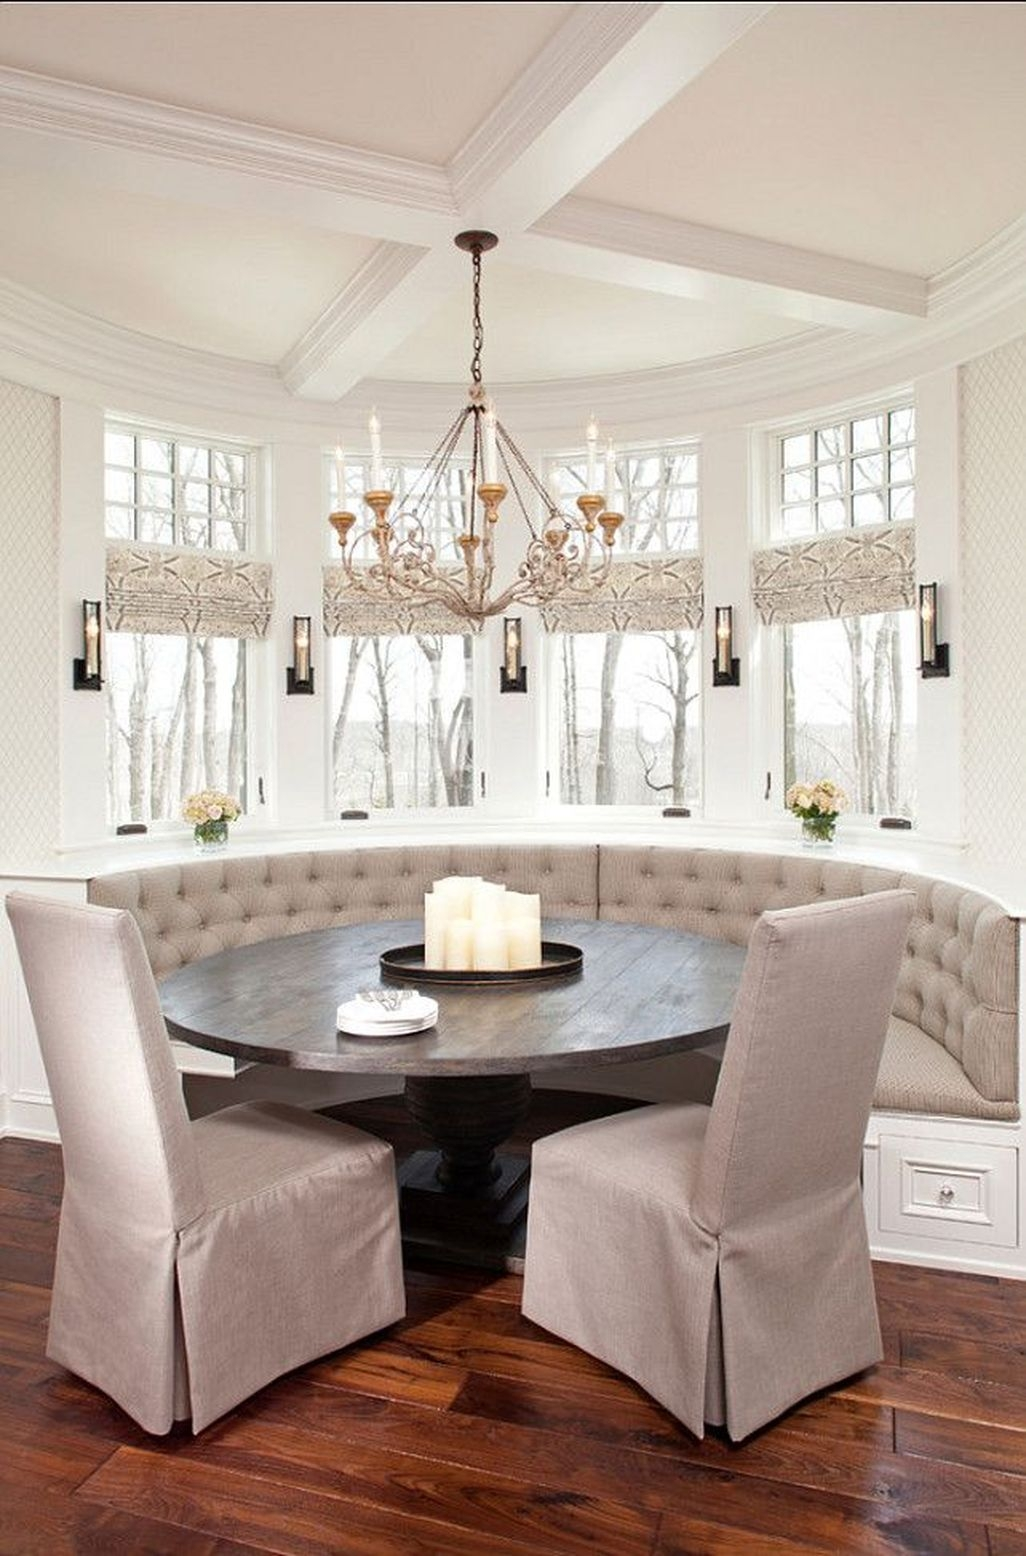 Adorable Family Dining Room Decorating Ideas 38